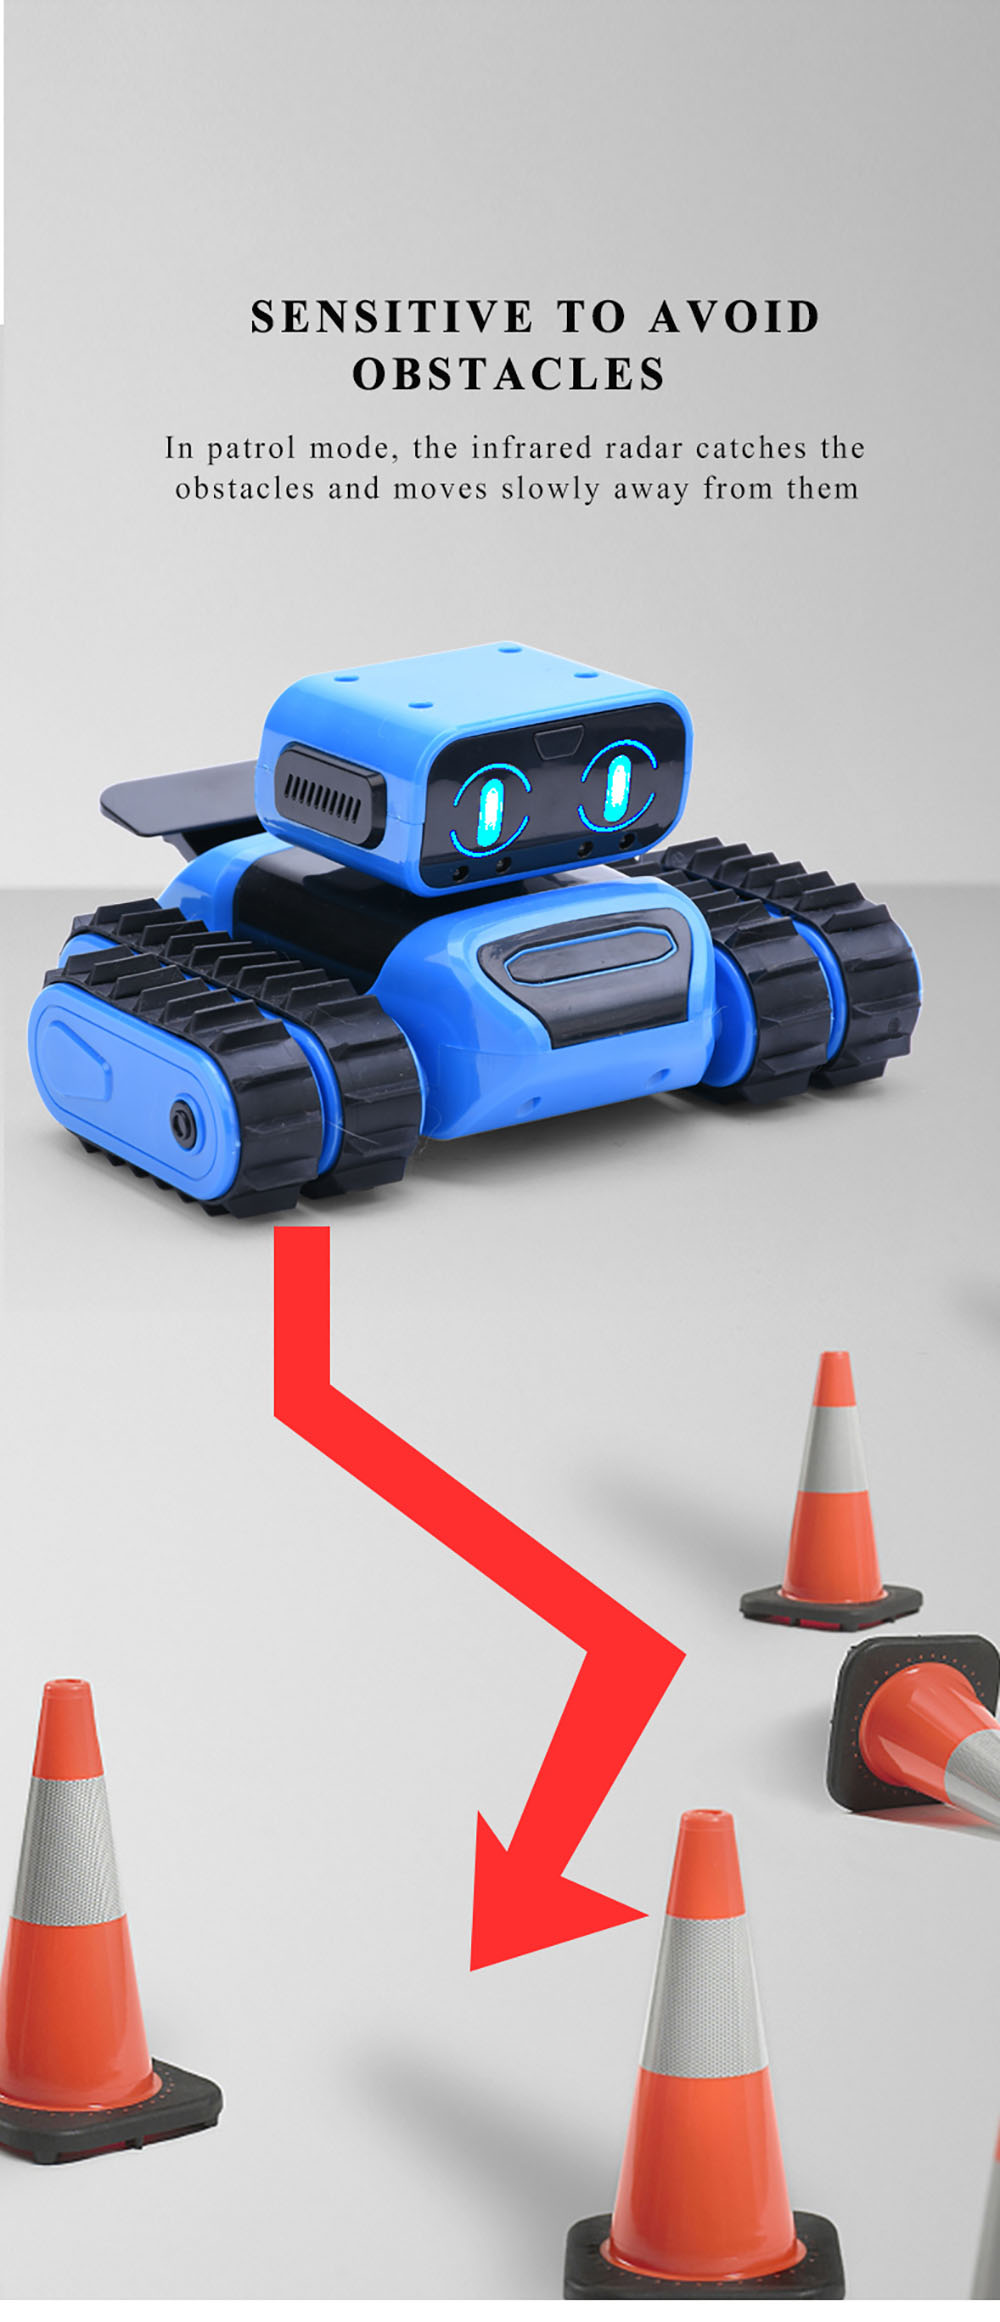 997 STEM DIY Remote Programming / Gesture Sensor Follow / Avoidance Stunt Function Robot Educational Toy Remote Control Version Dual Mode Version - Dodger Blue